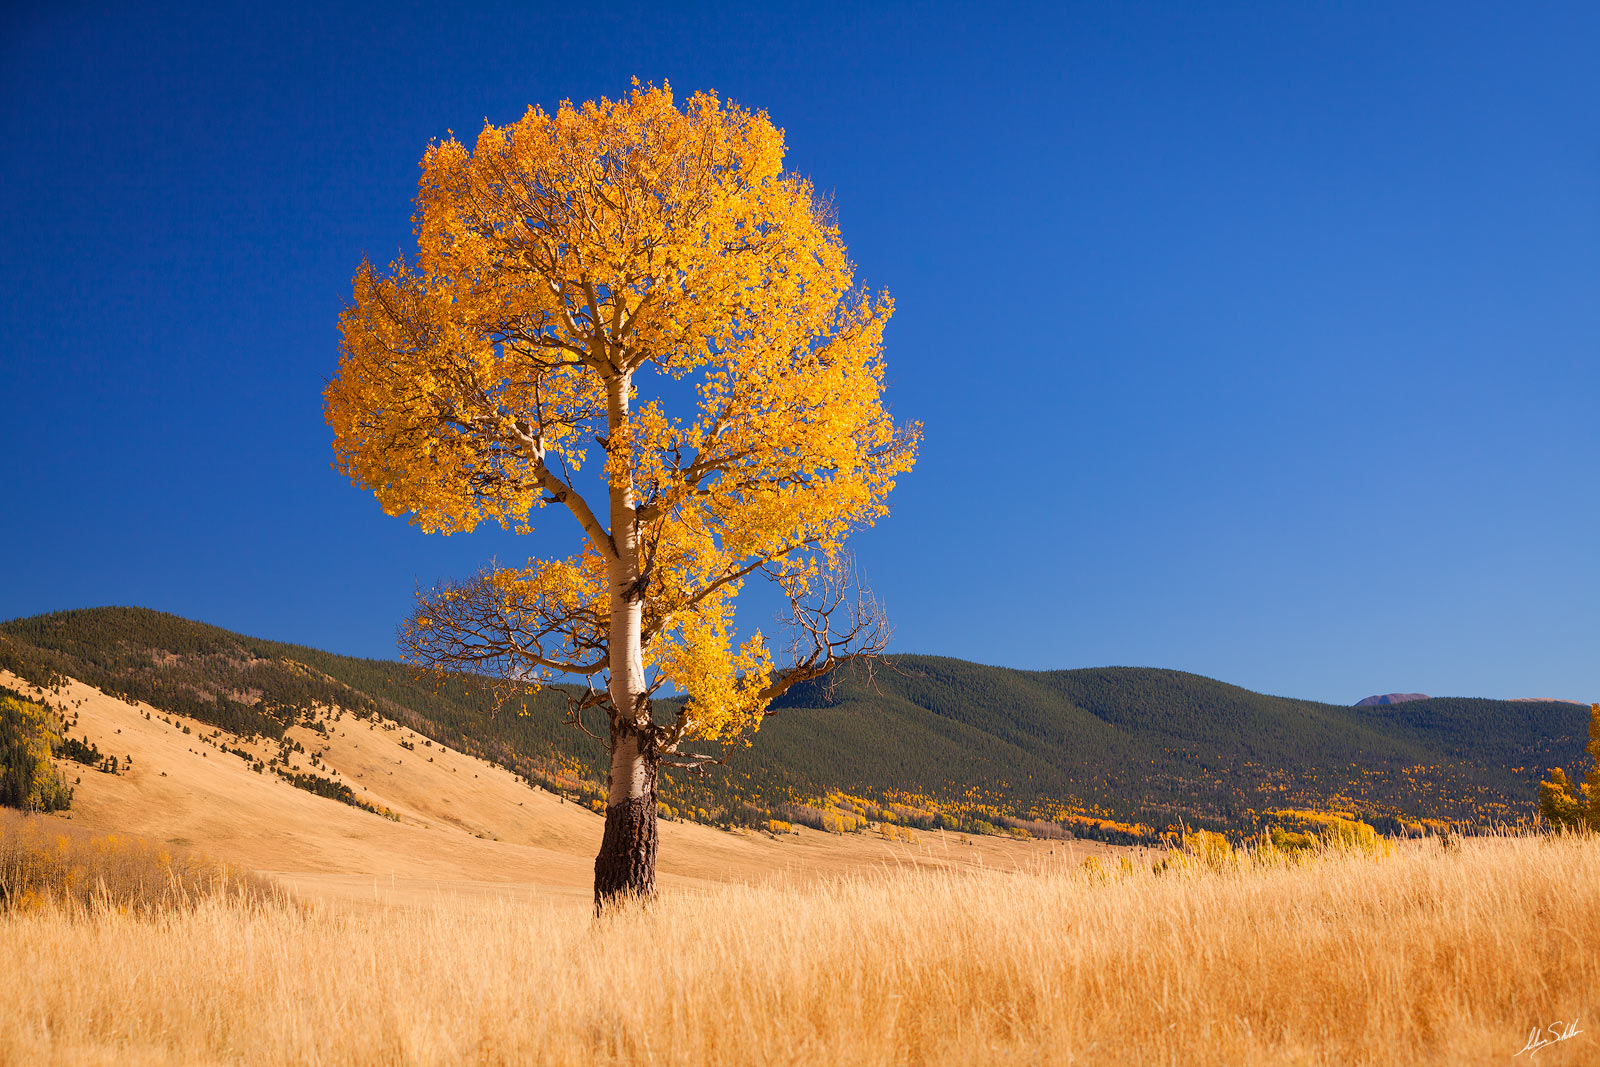 Aspen Tree, Autumn, Blue Sky, Carson National Forest, Fall, Fall Color, NM, New Mexico, Valle Vidal, photo